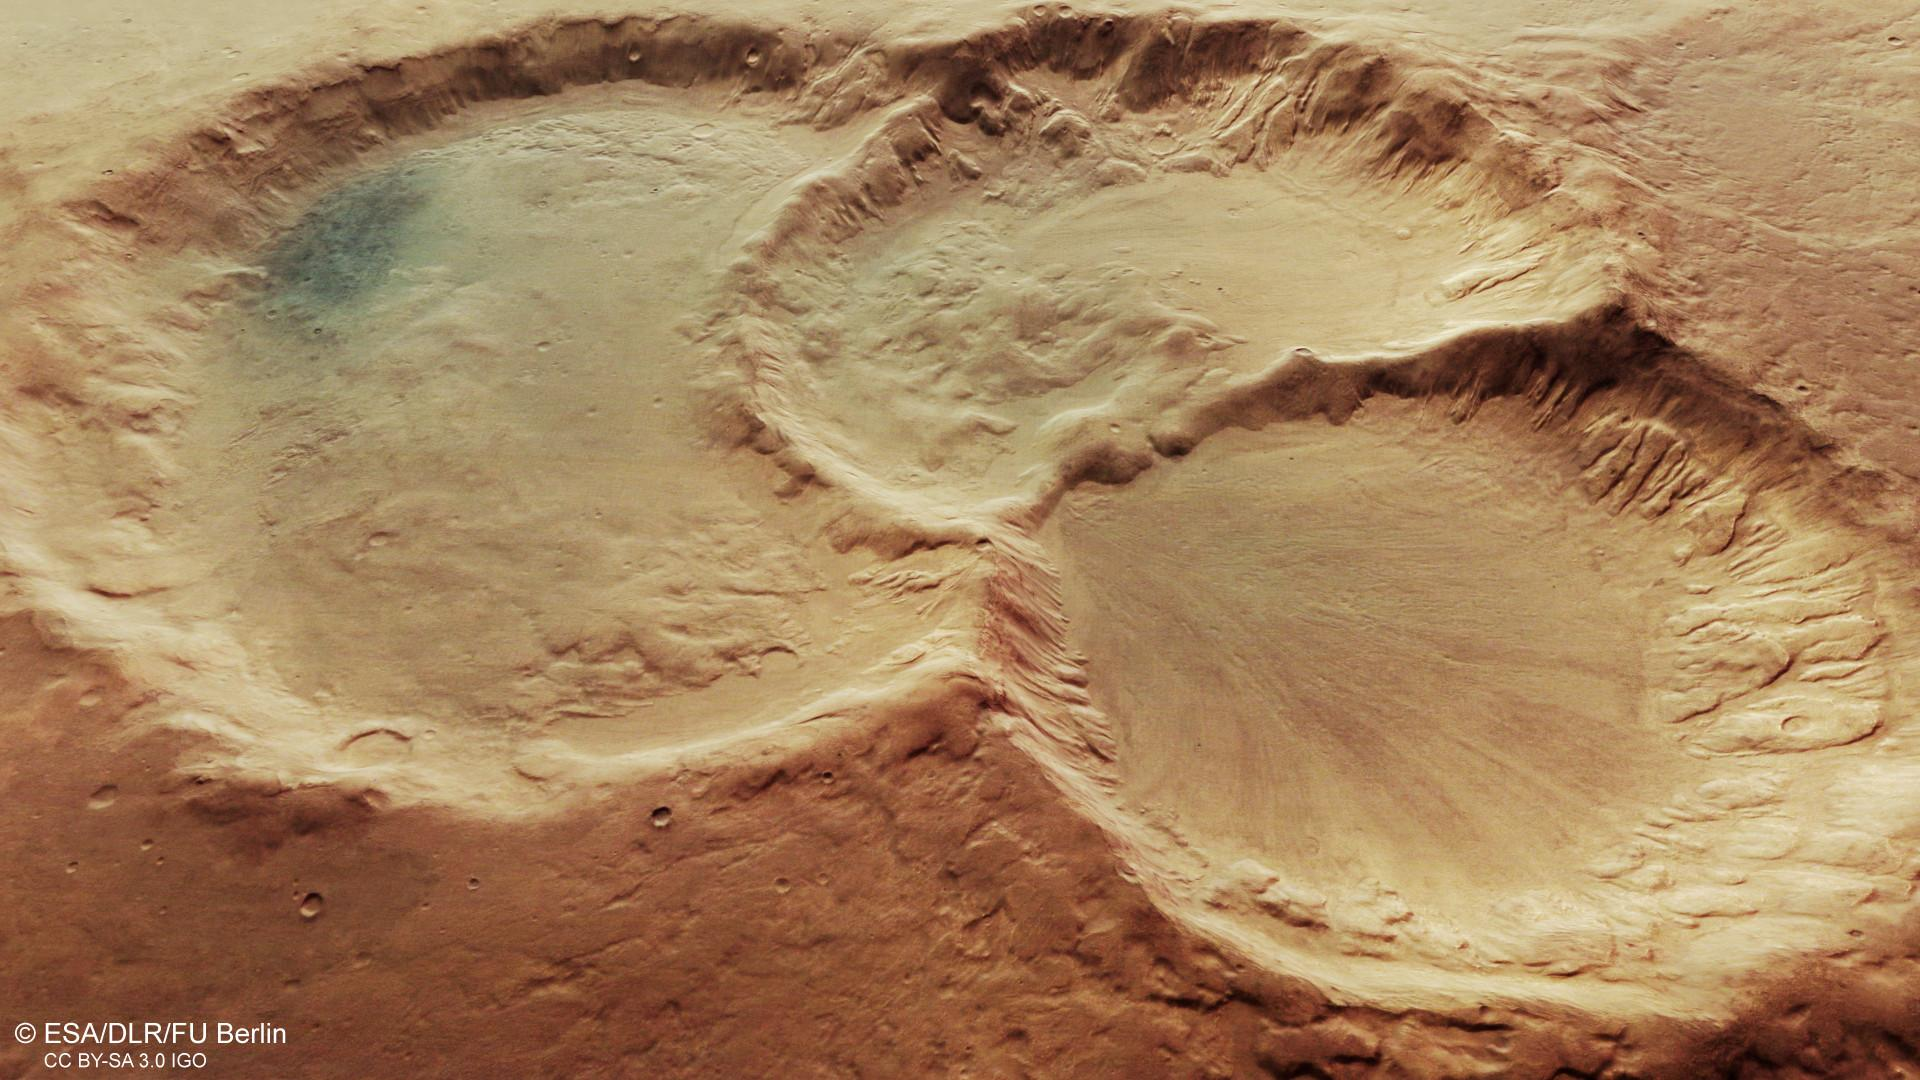 Signs of glacial activity in a crater triplet on the southern highlands of Mars